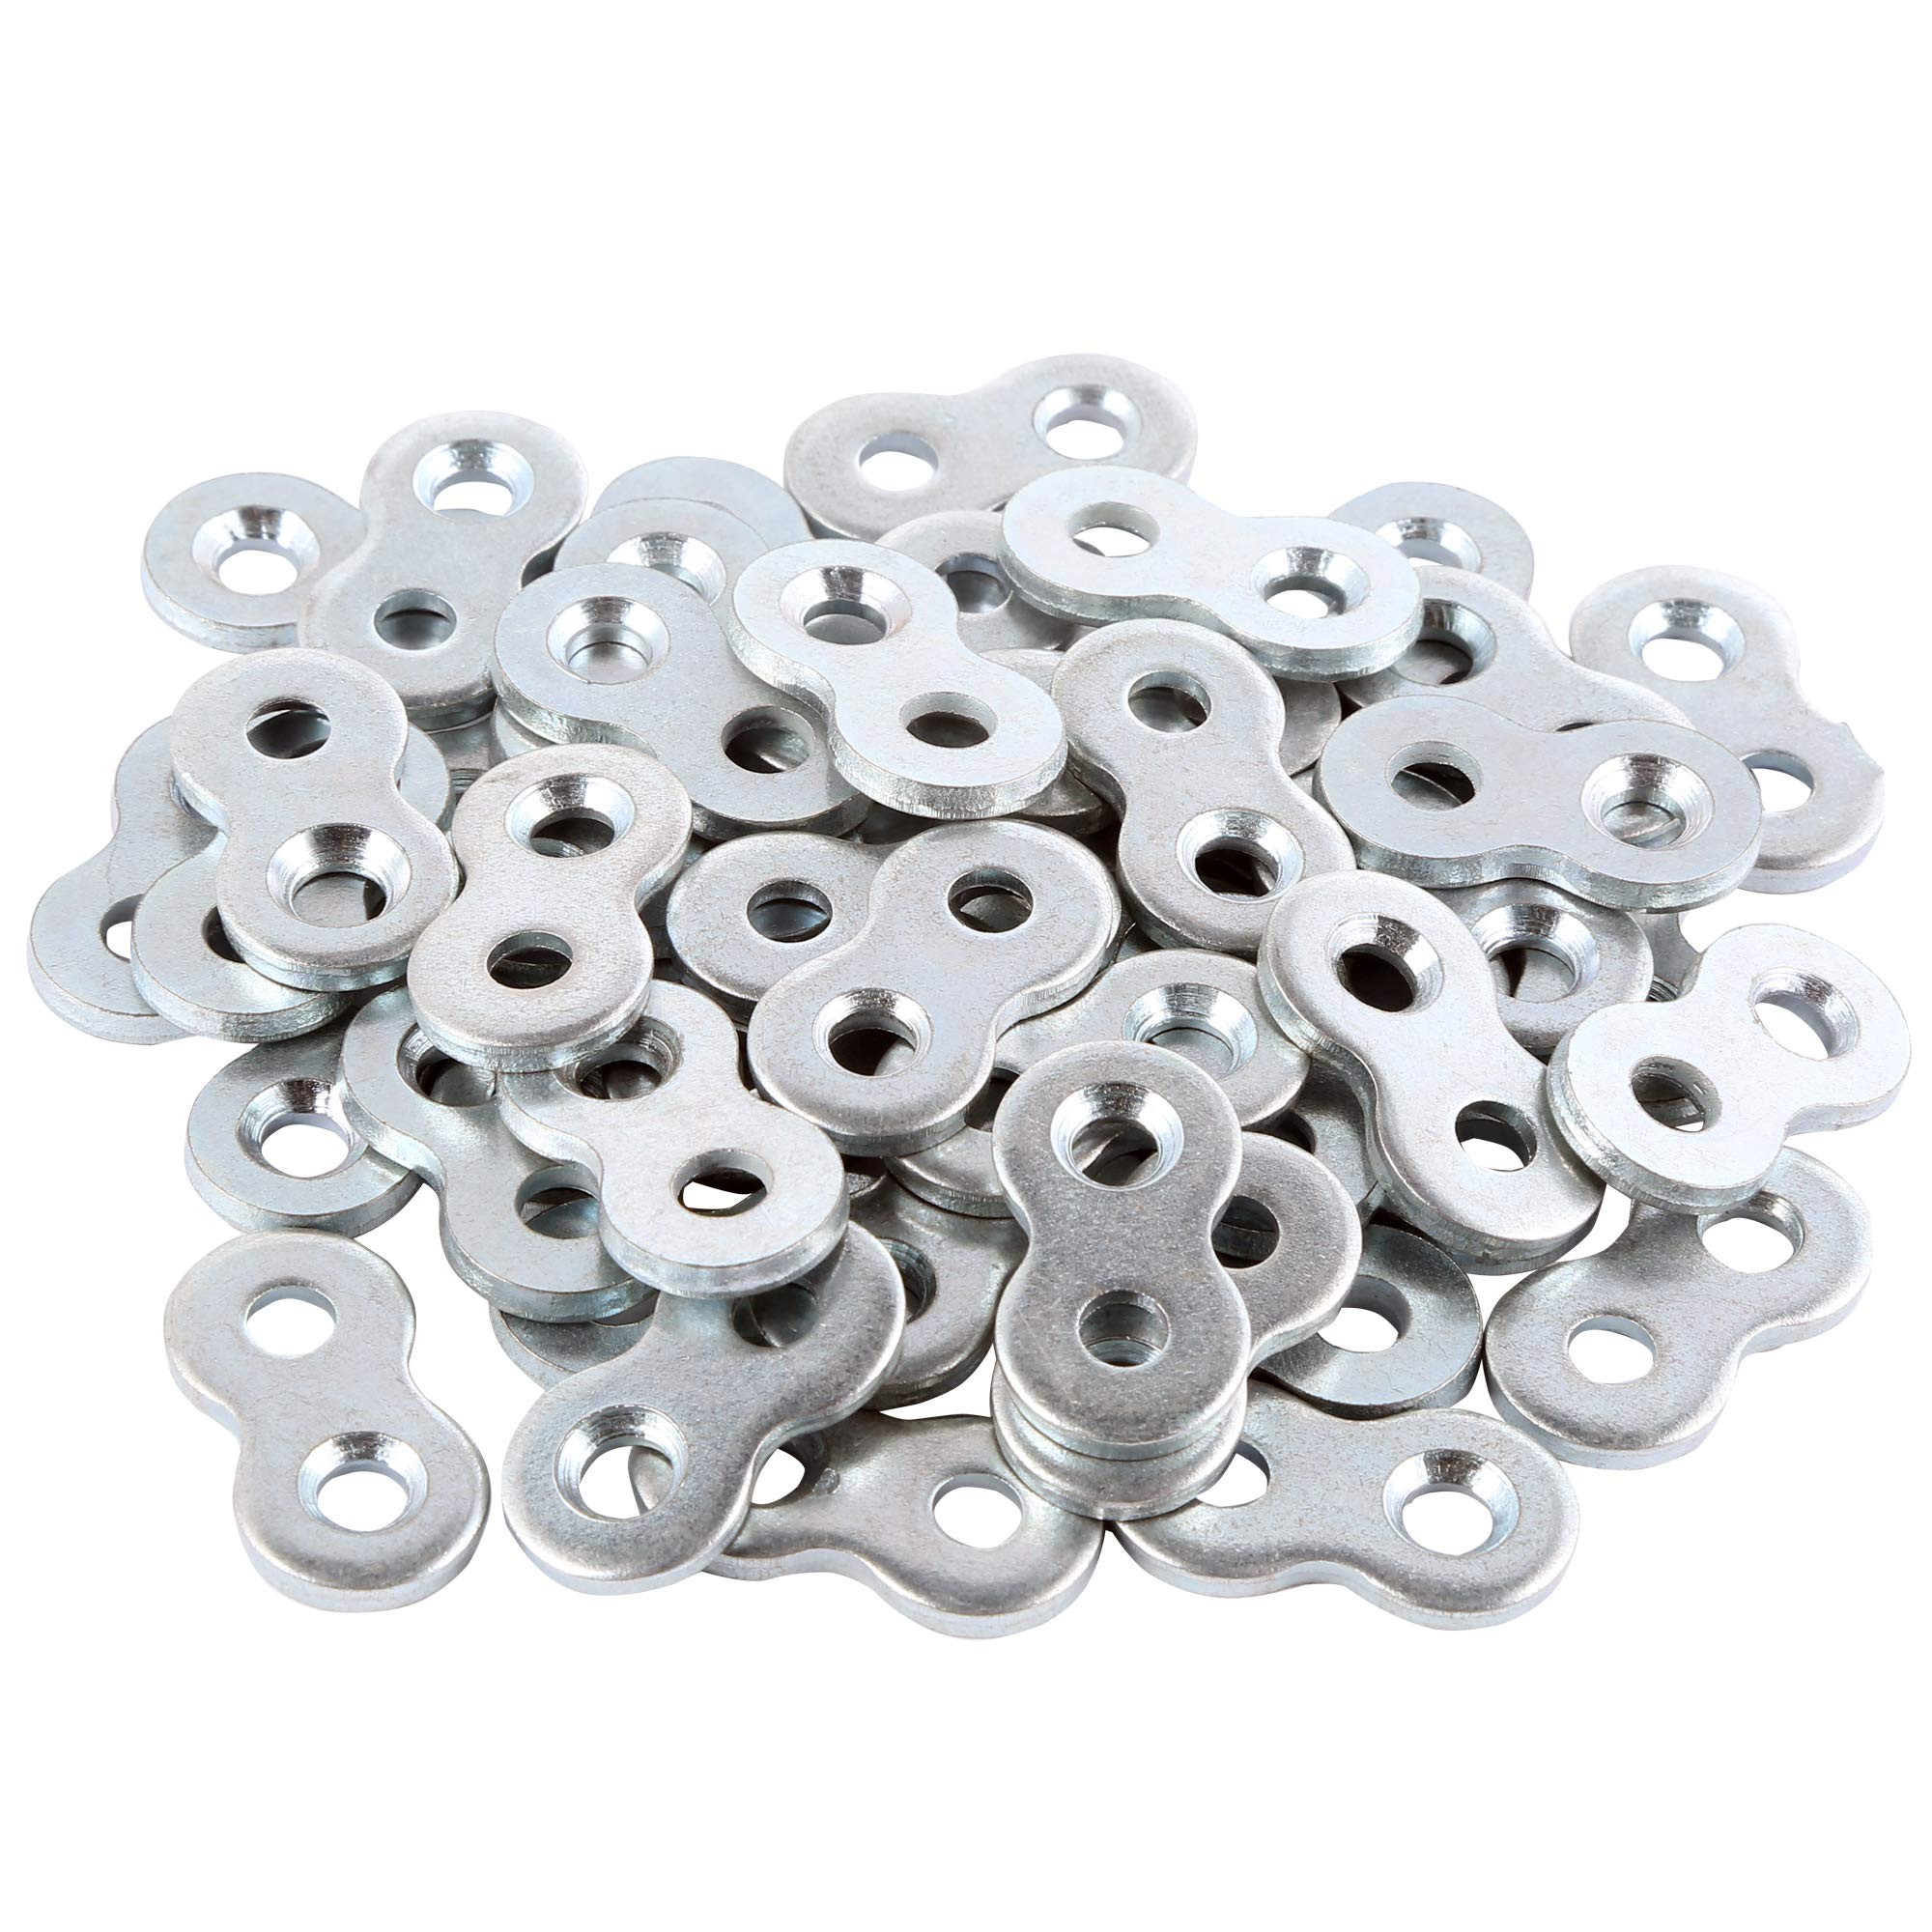 L Continue Figure 8 Fastener or Table Fasteners, Heavy Duty Steel and Galvanized Exterior. (50 Pack) by L Continue (Image #1)